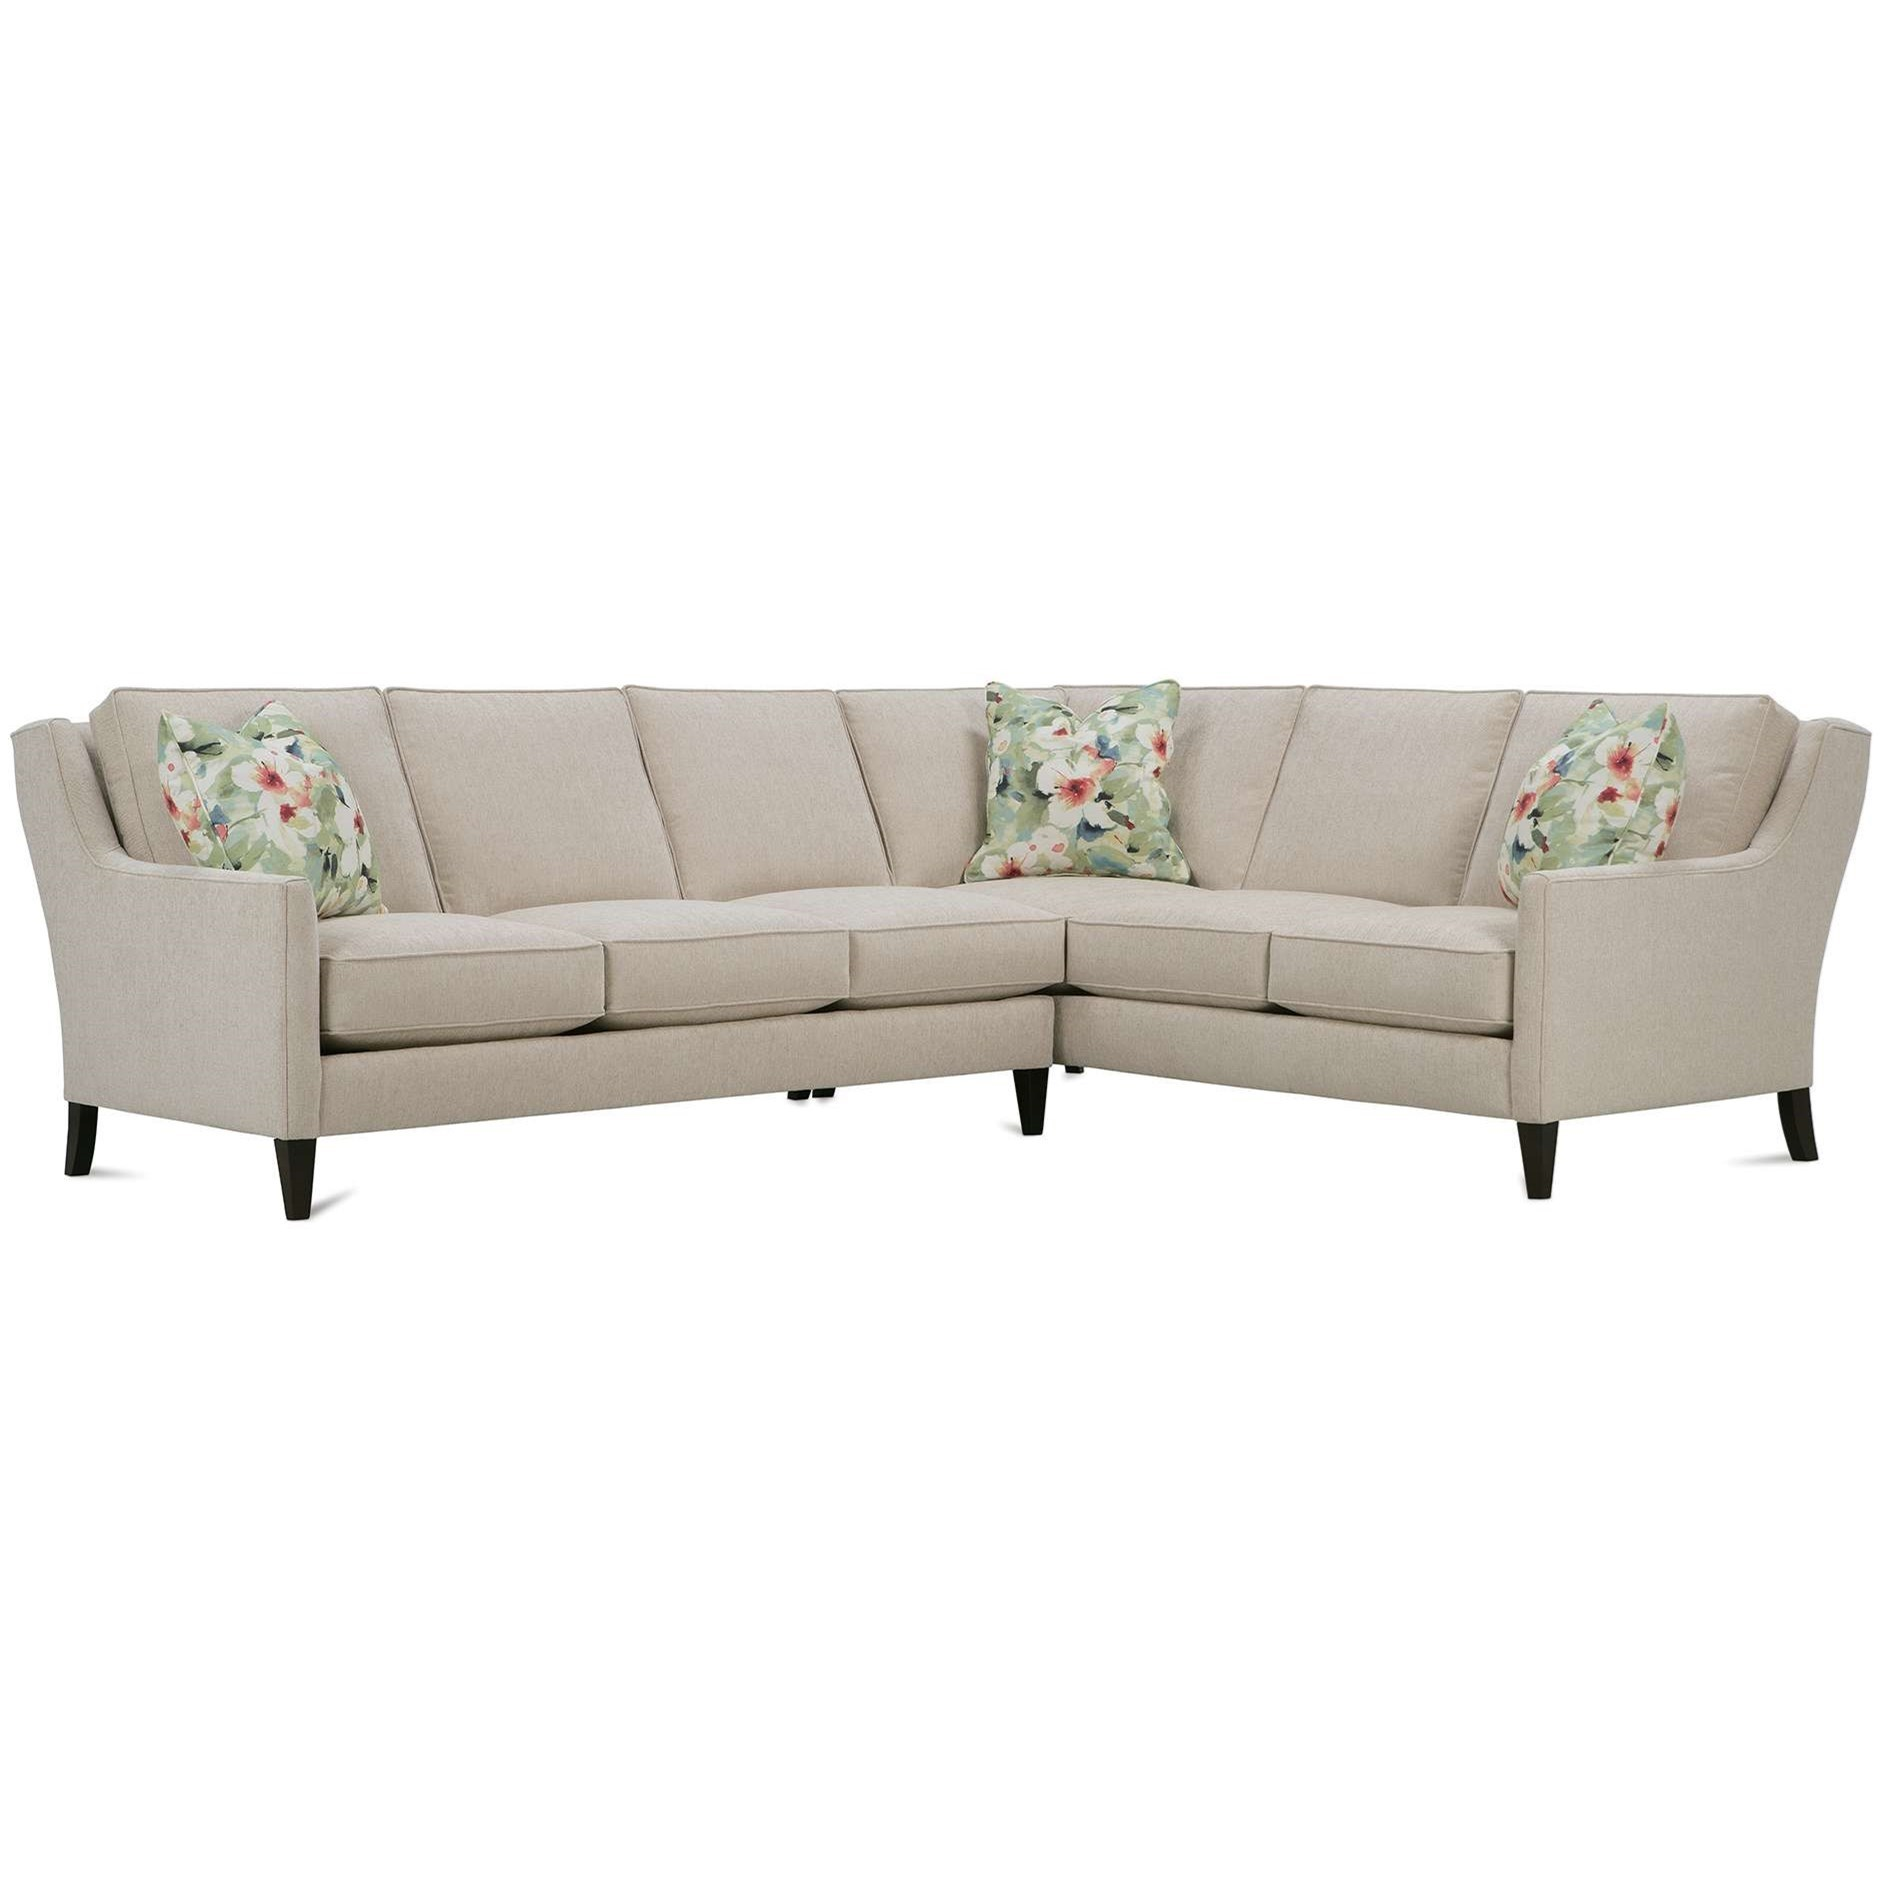 Andee 5 Seat Sectional by Rowe at Thornton Furniture